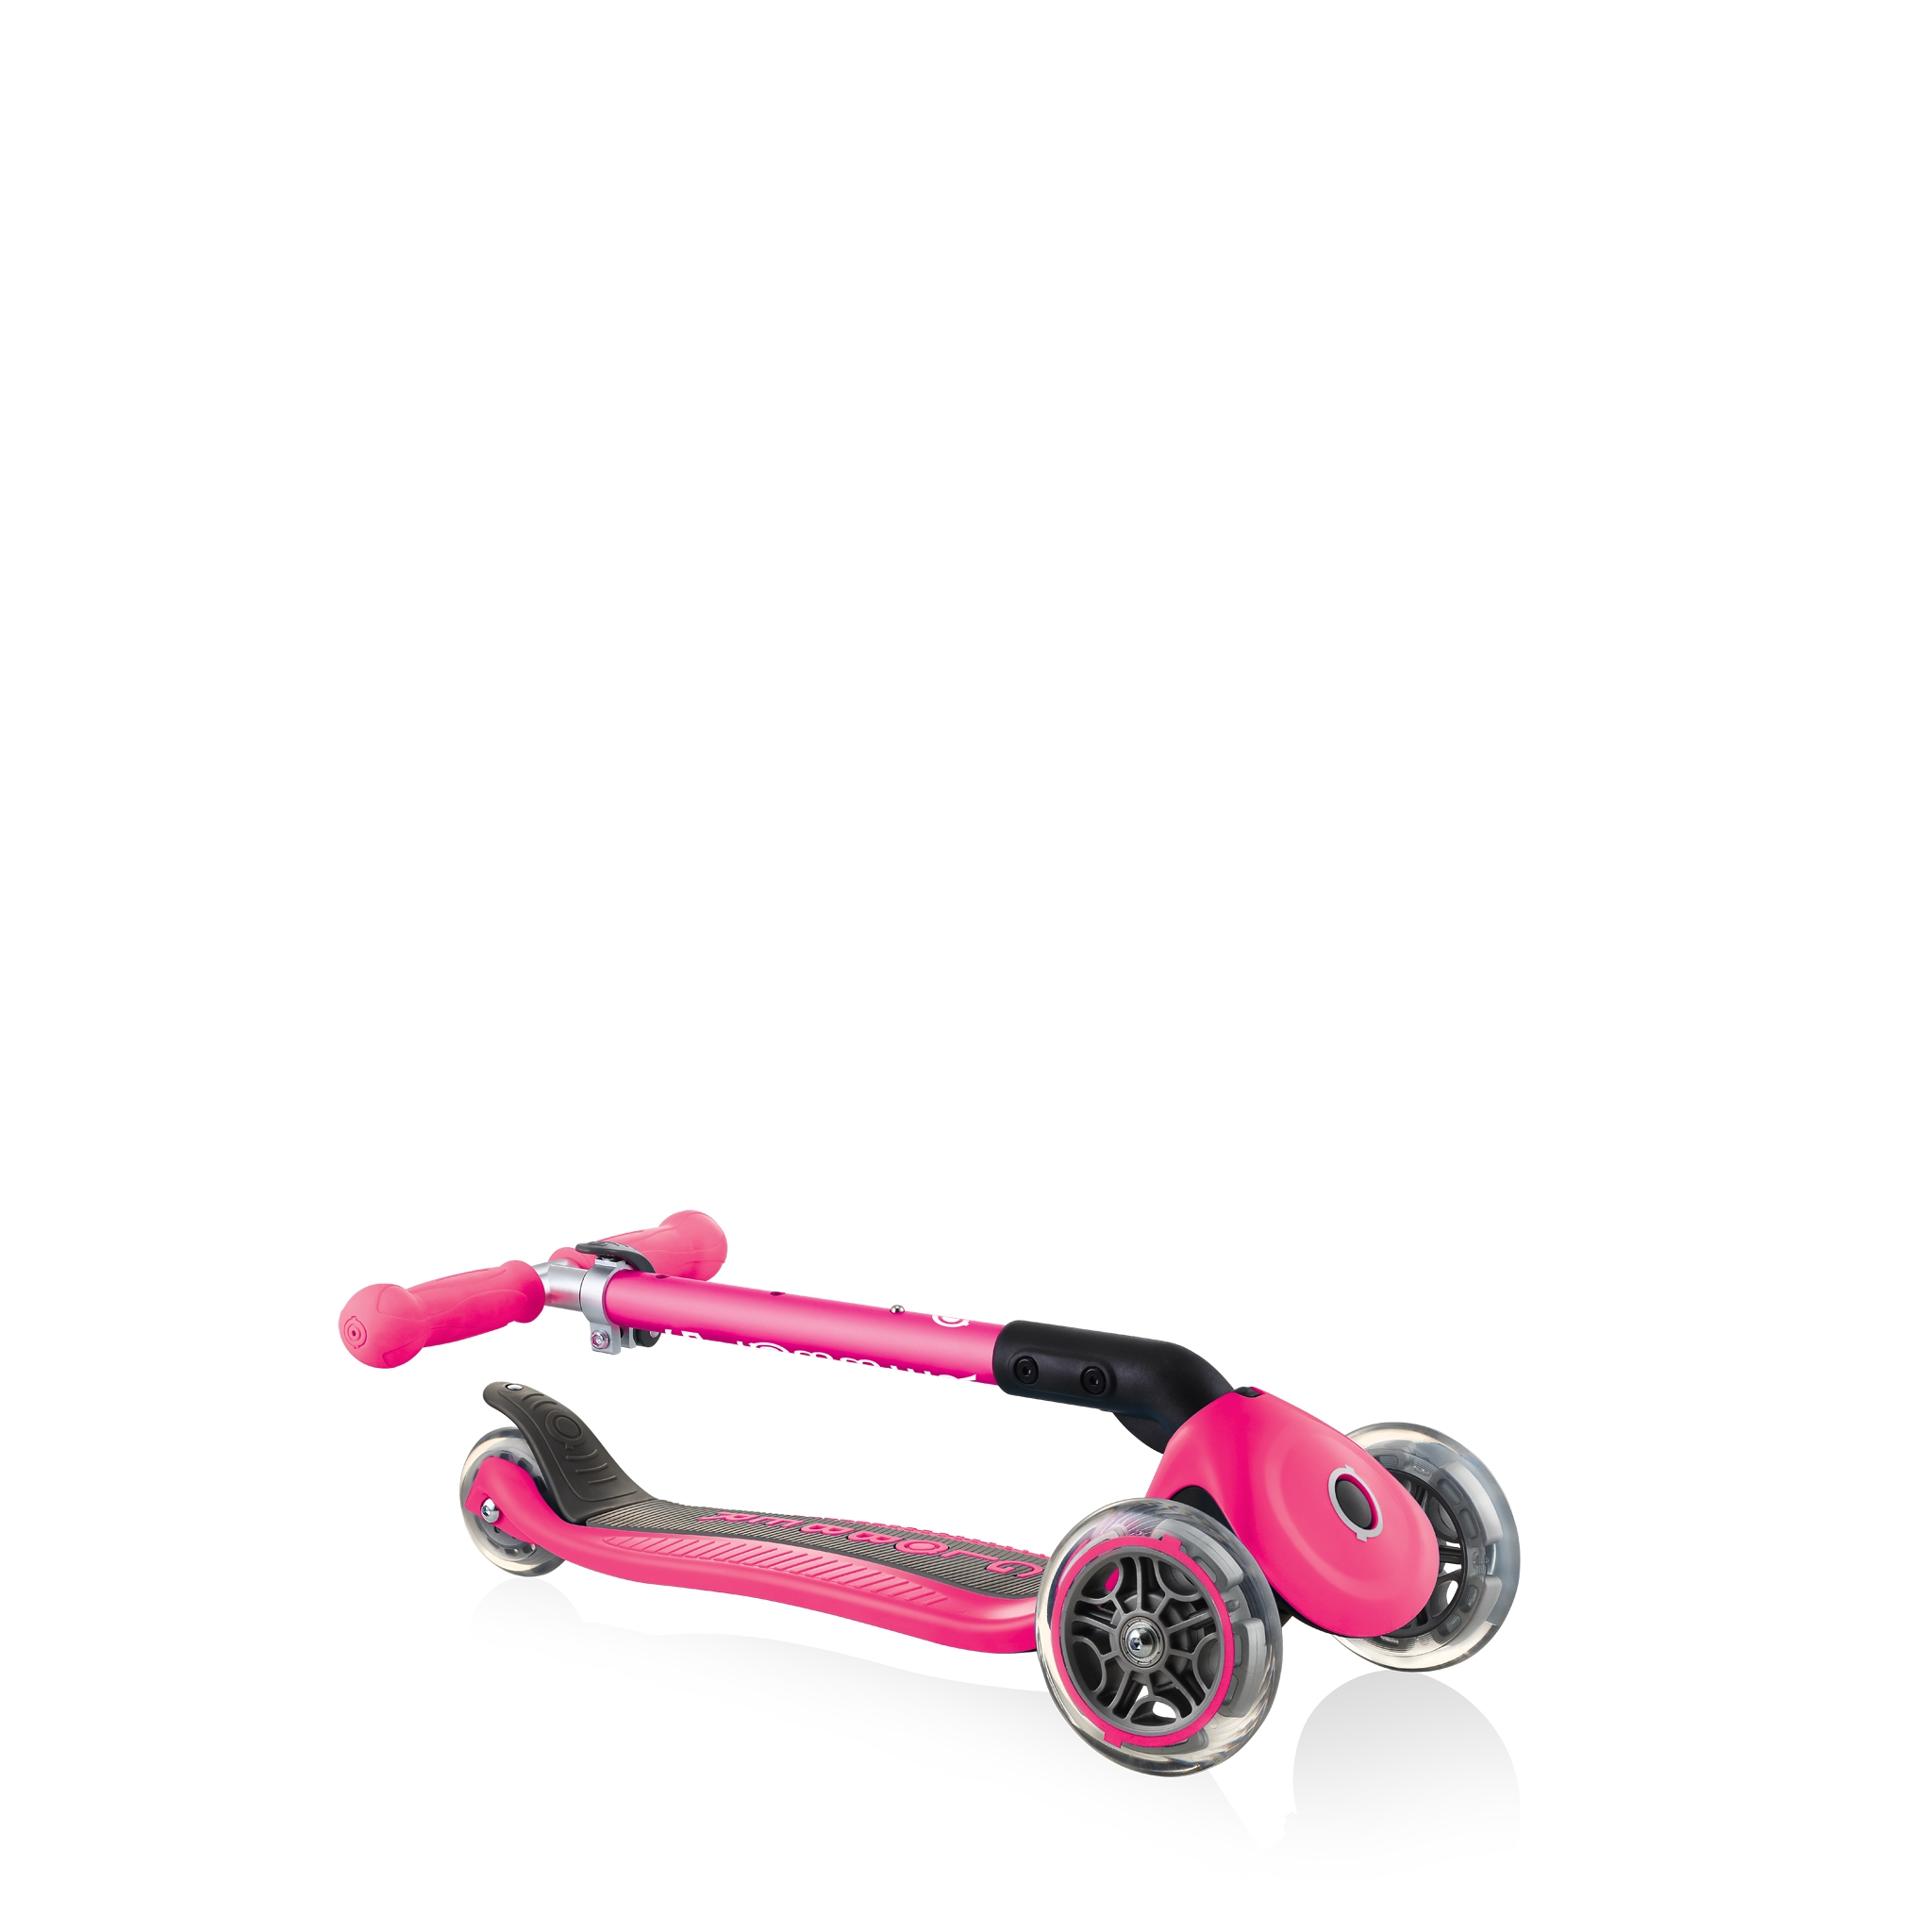 foldable-scooter-for-toddlers-aged-2-and-above-Globber-JUNIOR-FOLDABLE